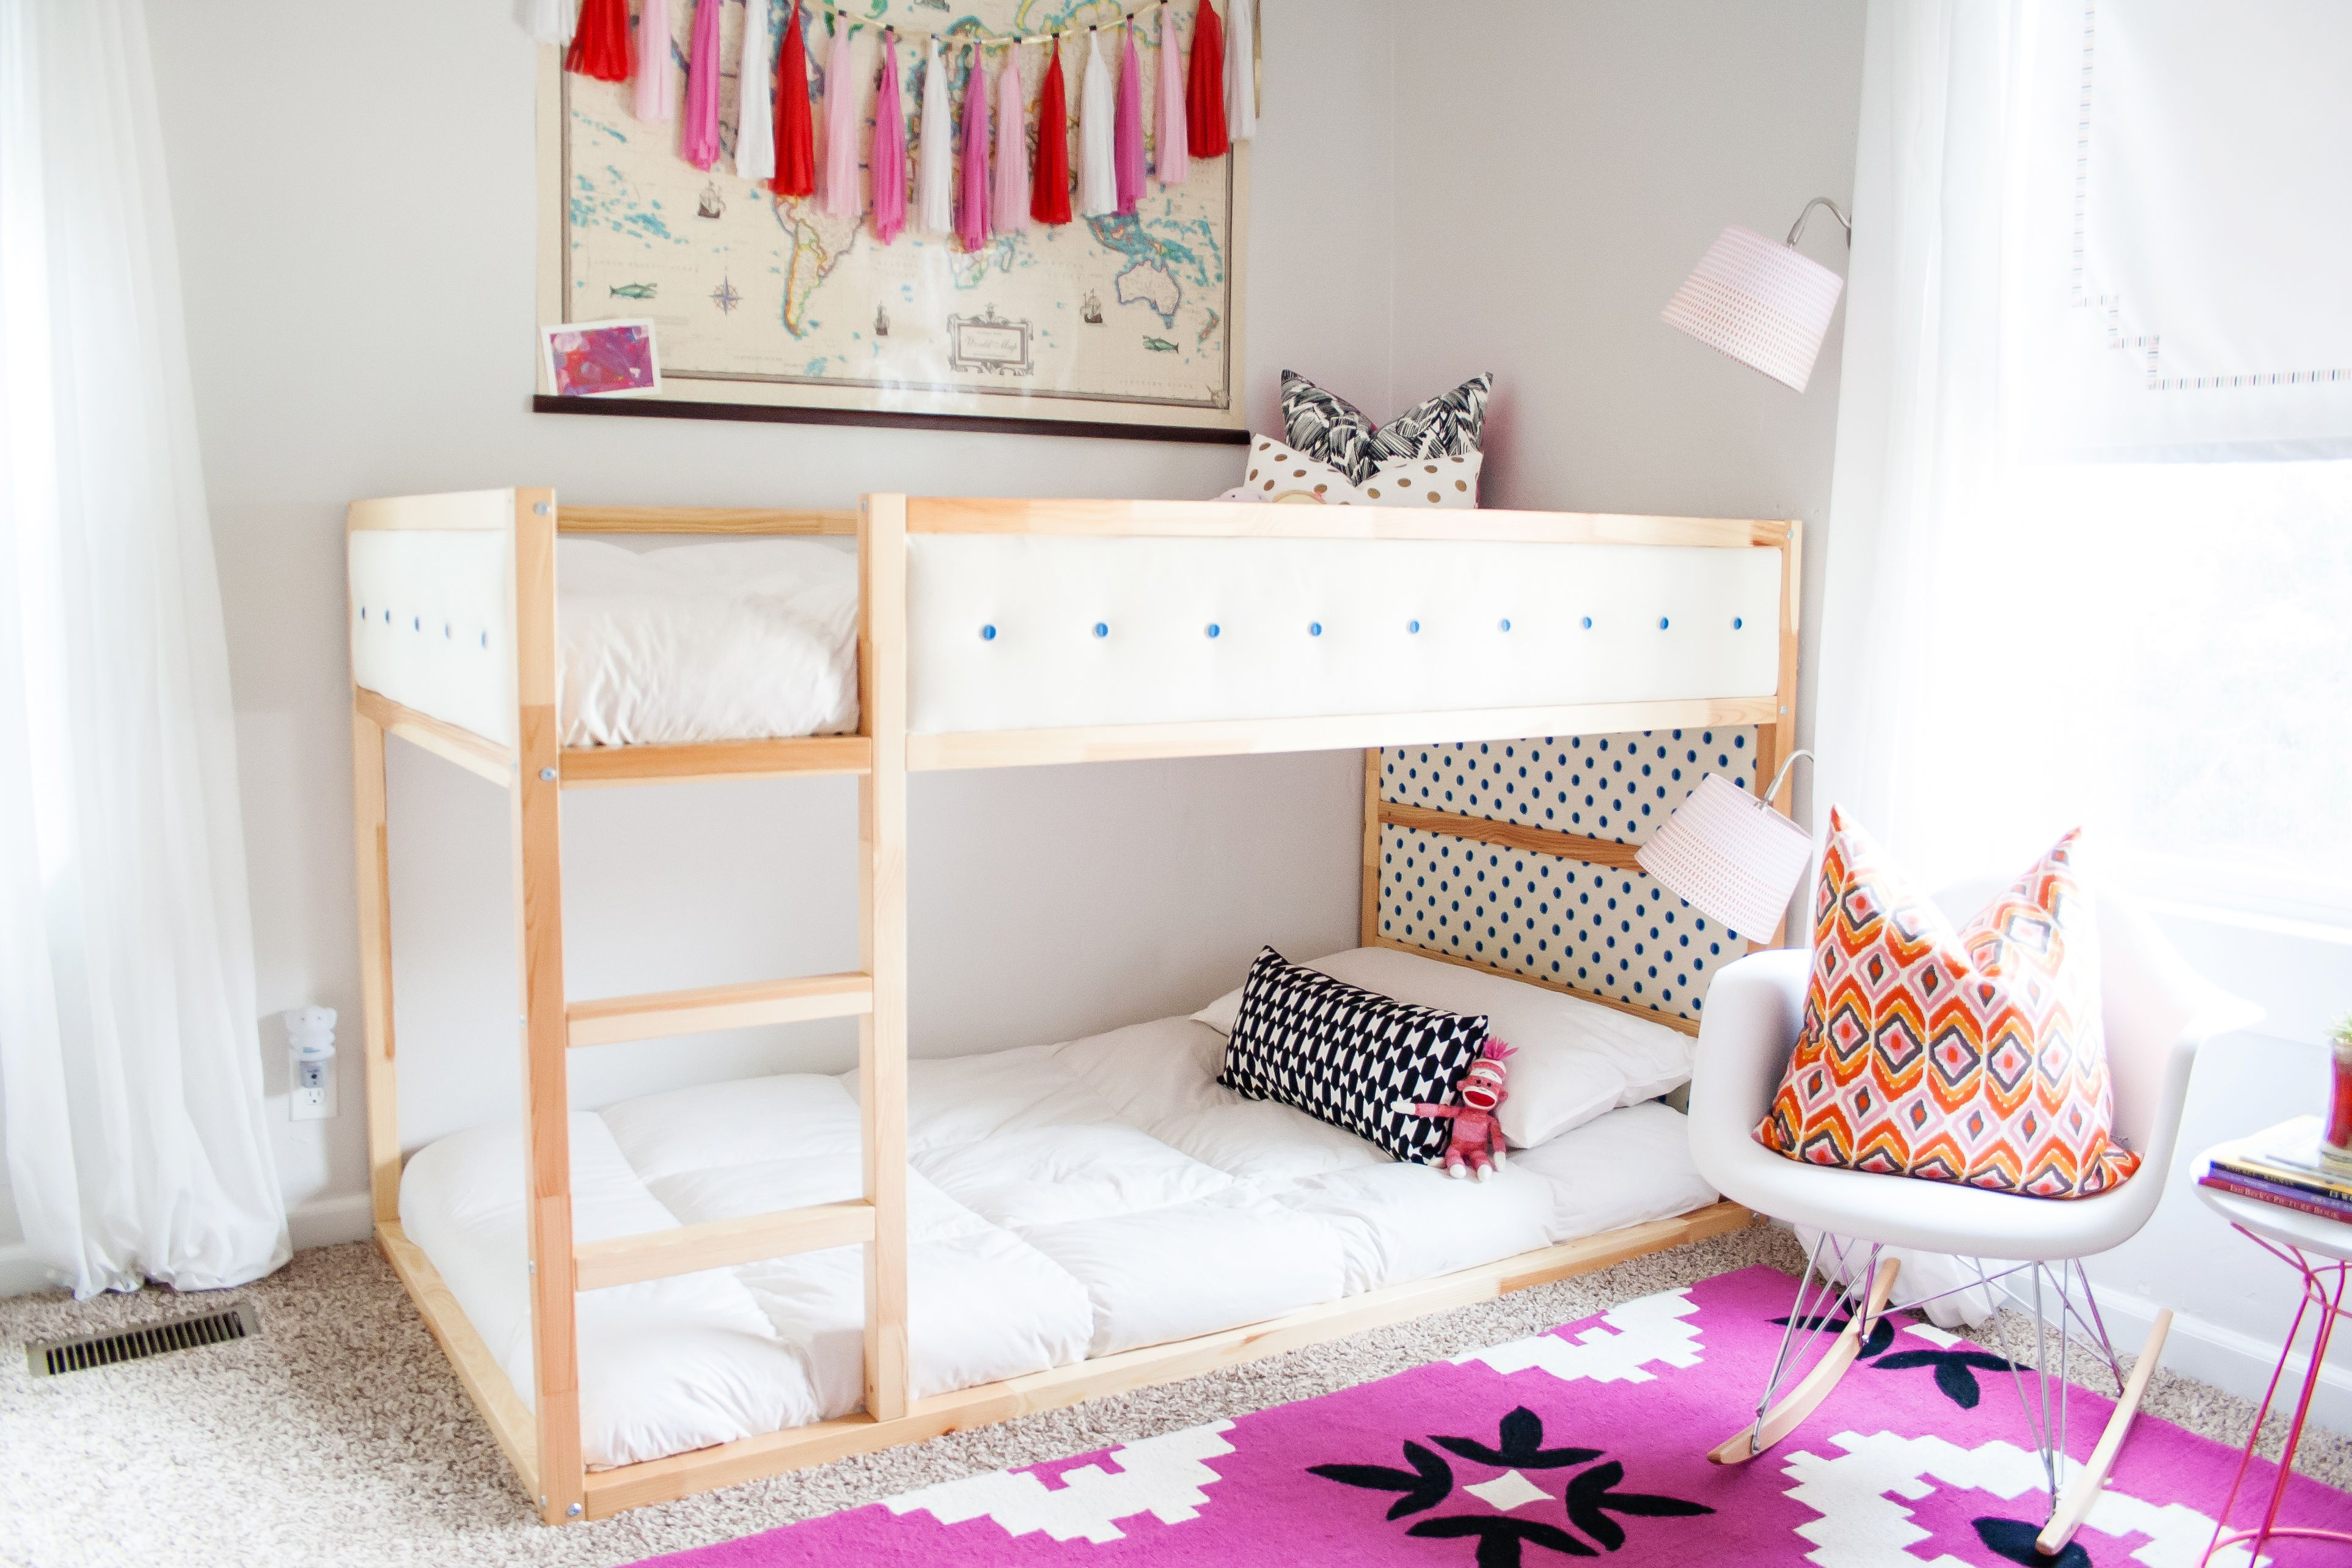 Bunk beds for kids ikea - 31 Ikea Bunk Bed Hacks That Will Make Your Kids Want To Share A Room